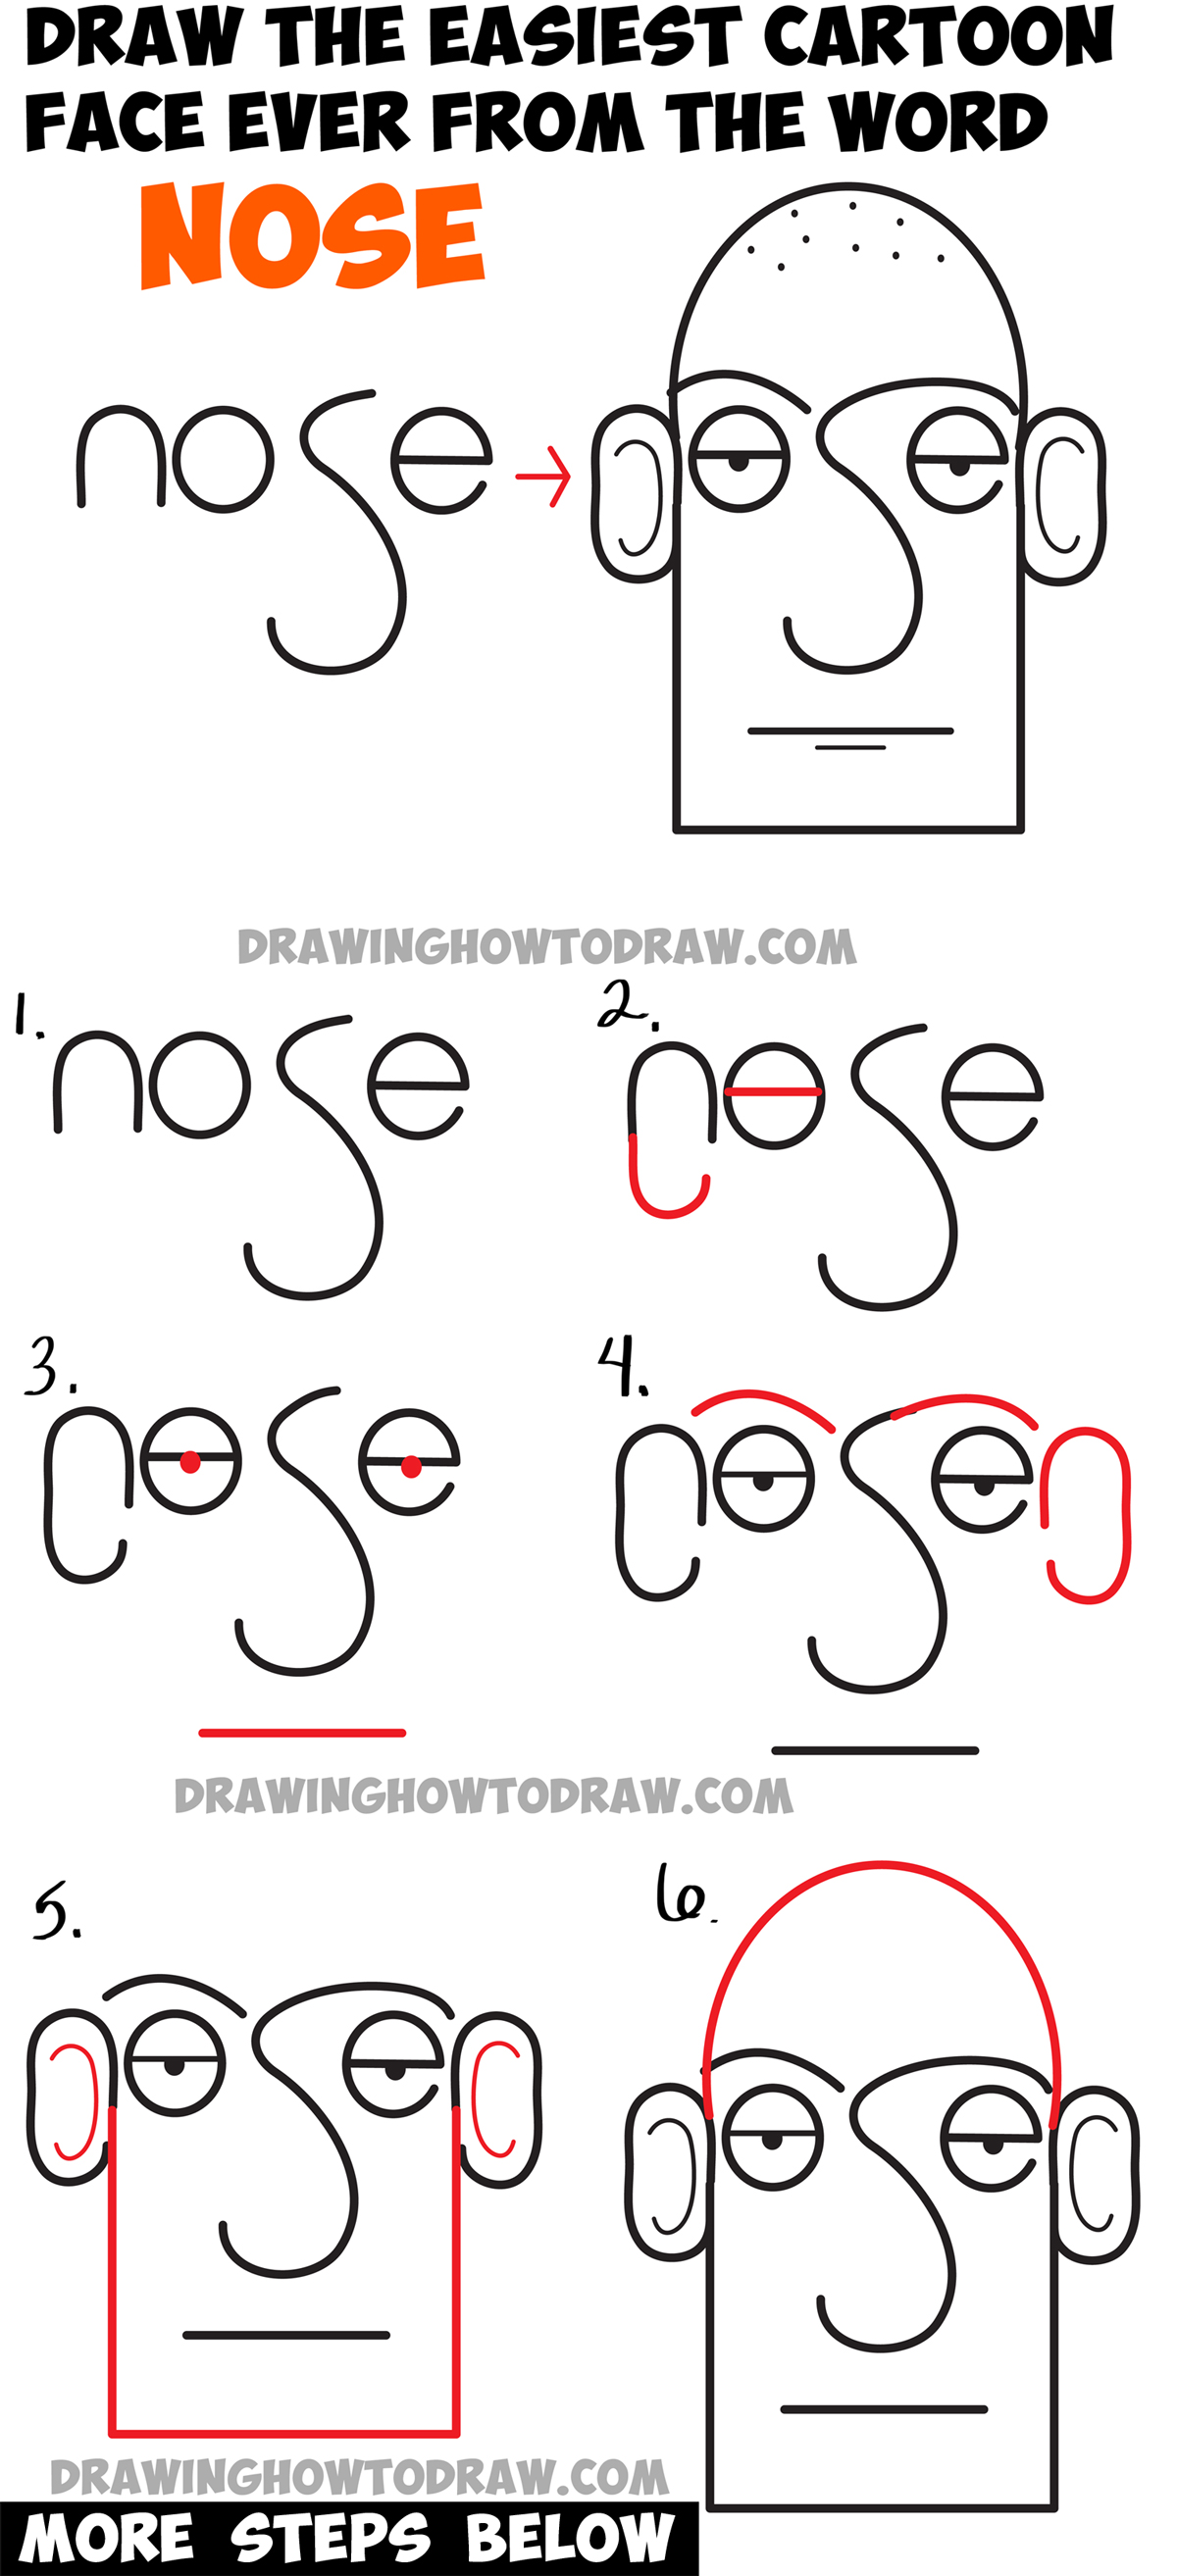 How to draw a cartoon face in easiest way ever from the for How to make cartoon drawings step by step